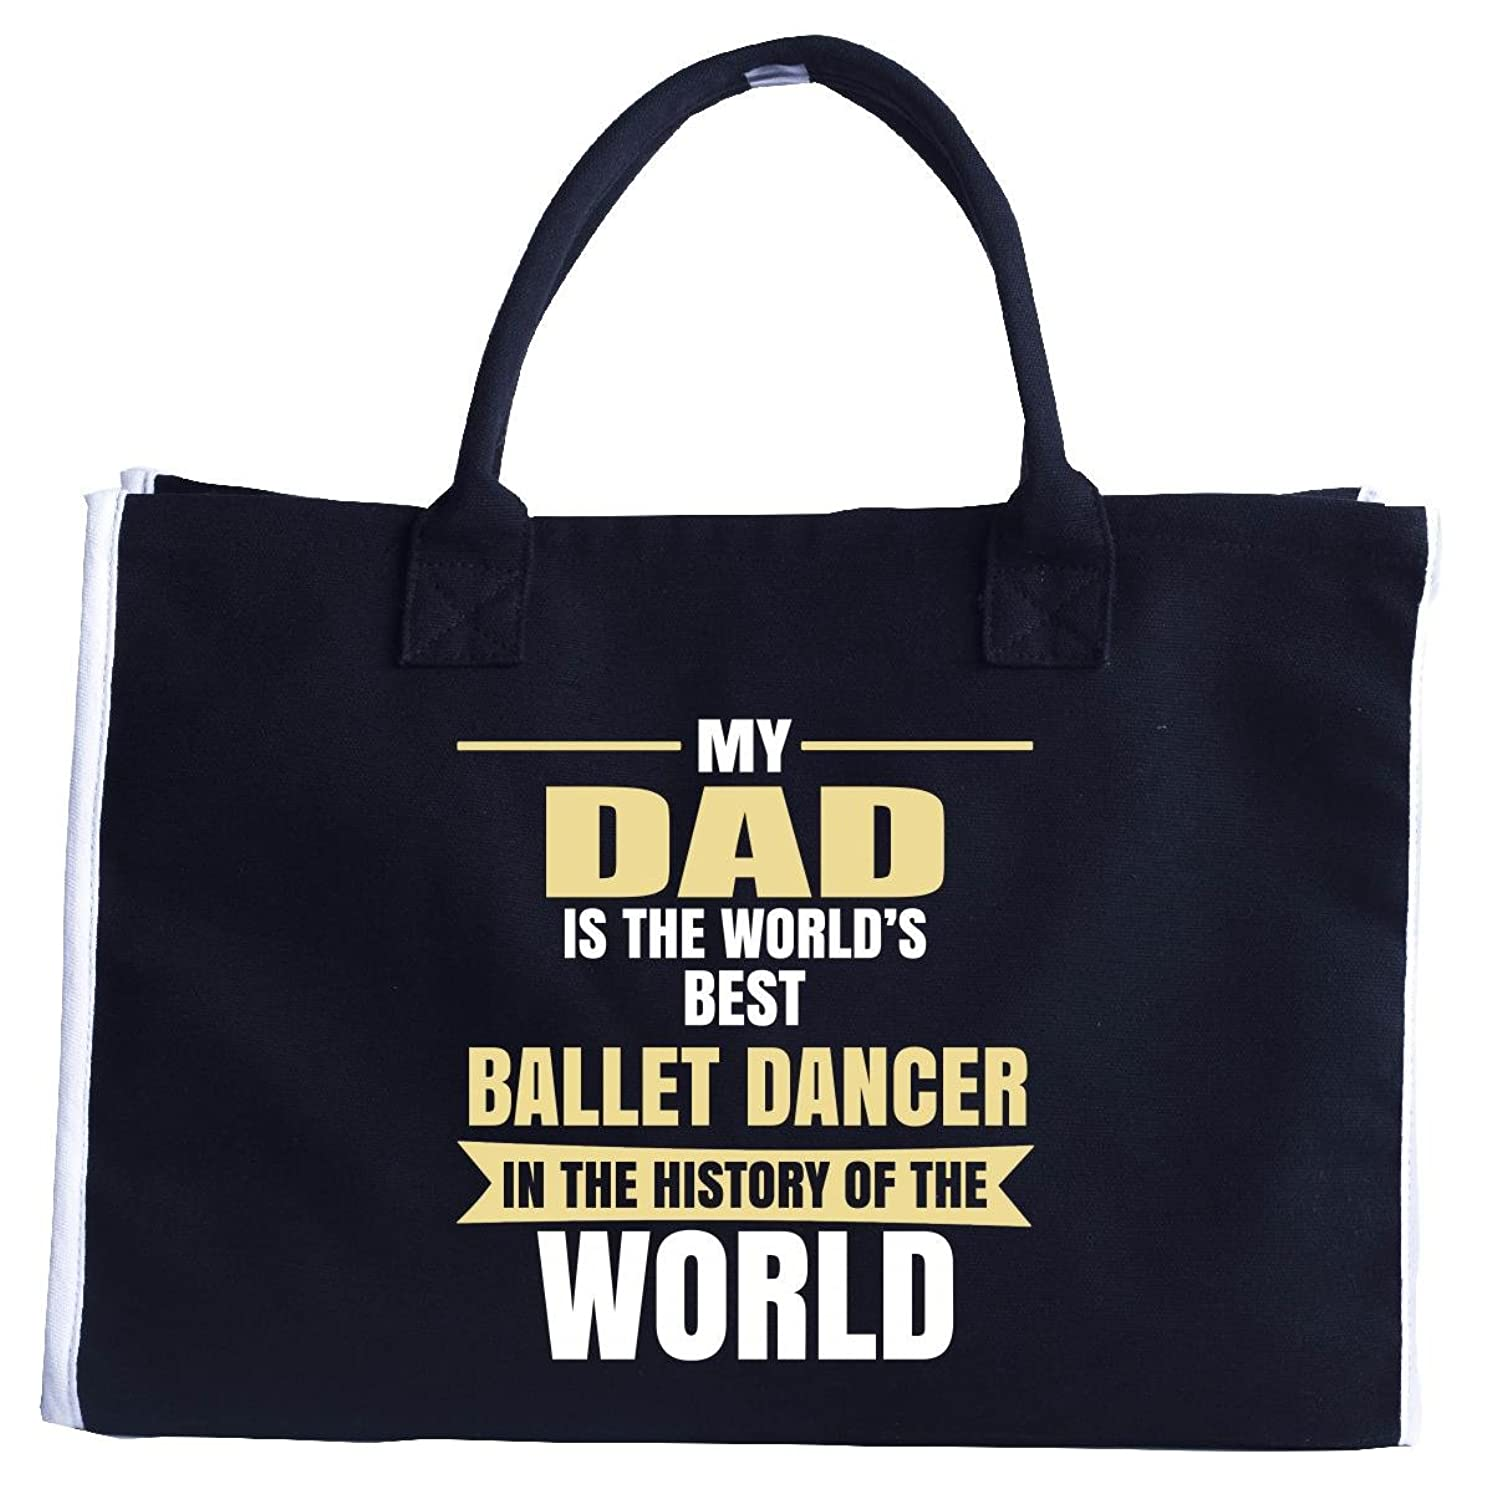 My Dad Is The World's Best Ballet Dancer In The History - Fashion Tote Bag